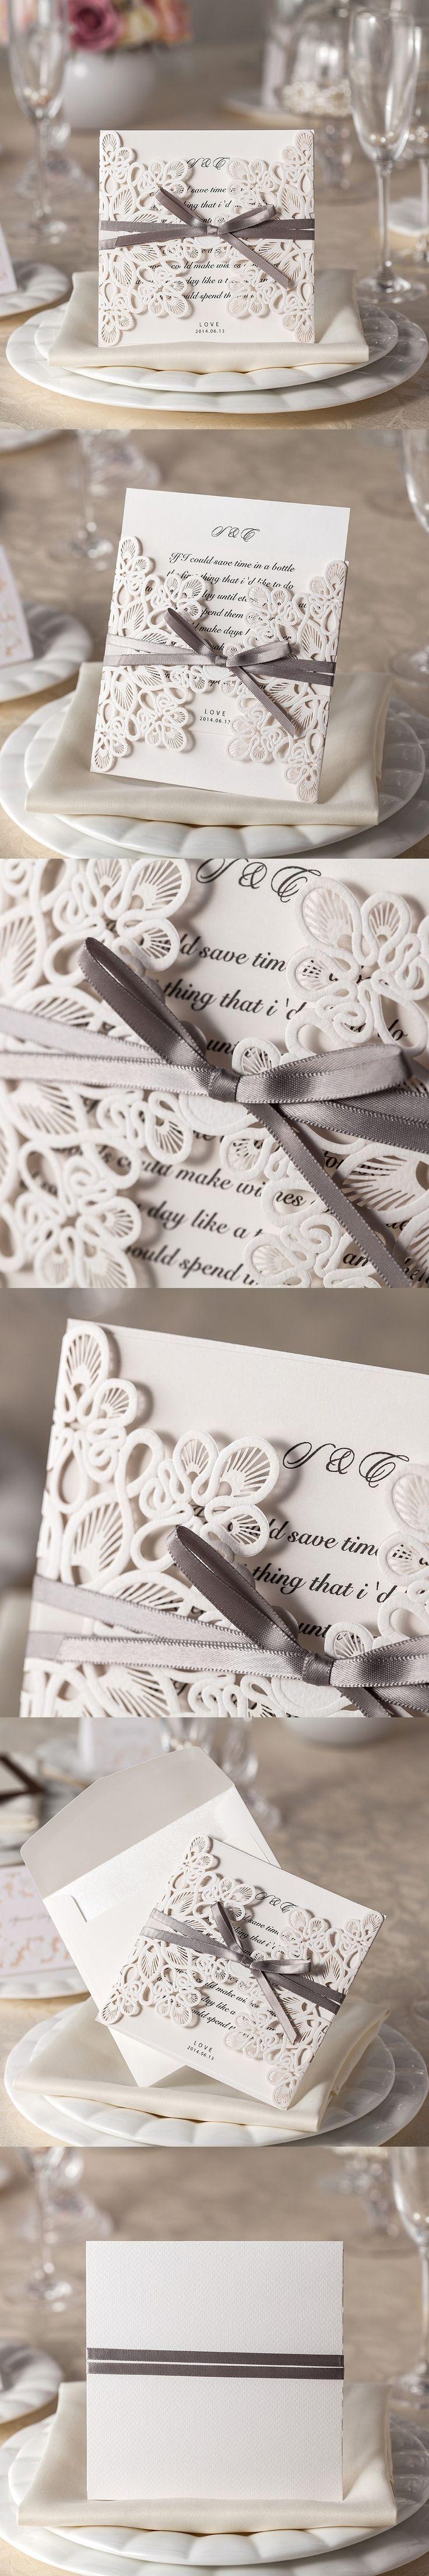 wedding card manufacturers in tamilnadu%0A Engagement Invitations  Lace Wedding Invitations  Guest Wedding Favours   Flower Vines  Lace Weddings  Origami  Wedding Gown Lace